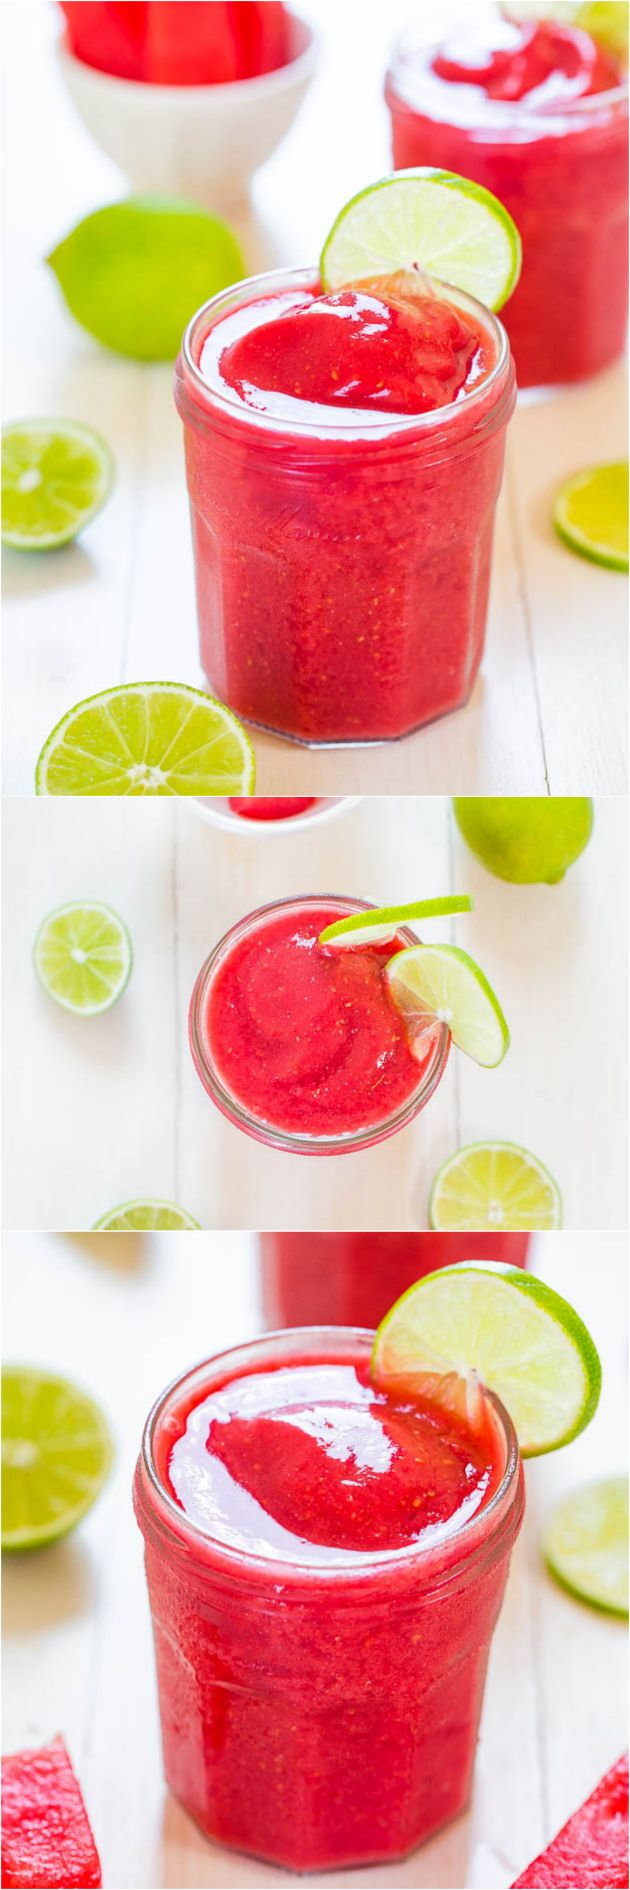 Watermelon Raspberry Slushies - Summertime in a glass! Cool, refreshing, and you'll want a refill before you know it!